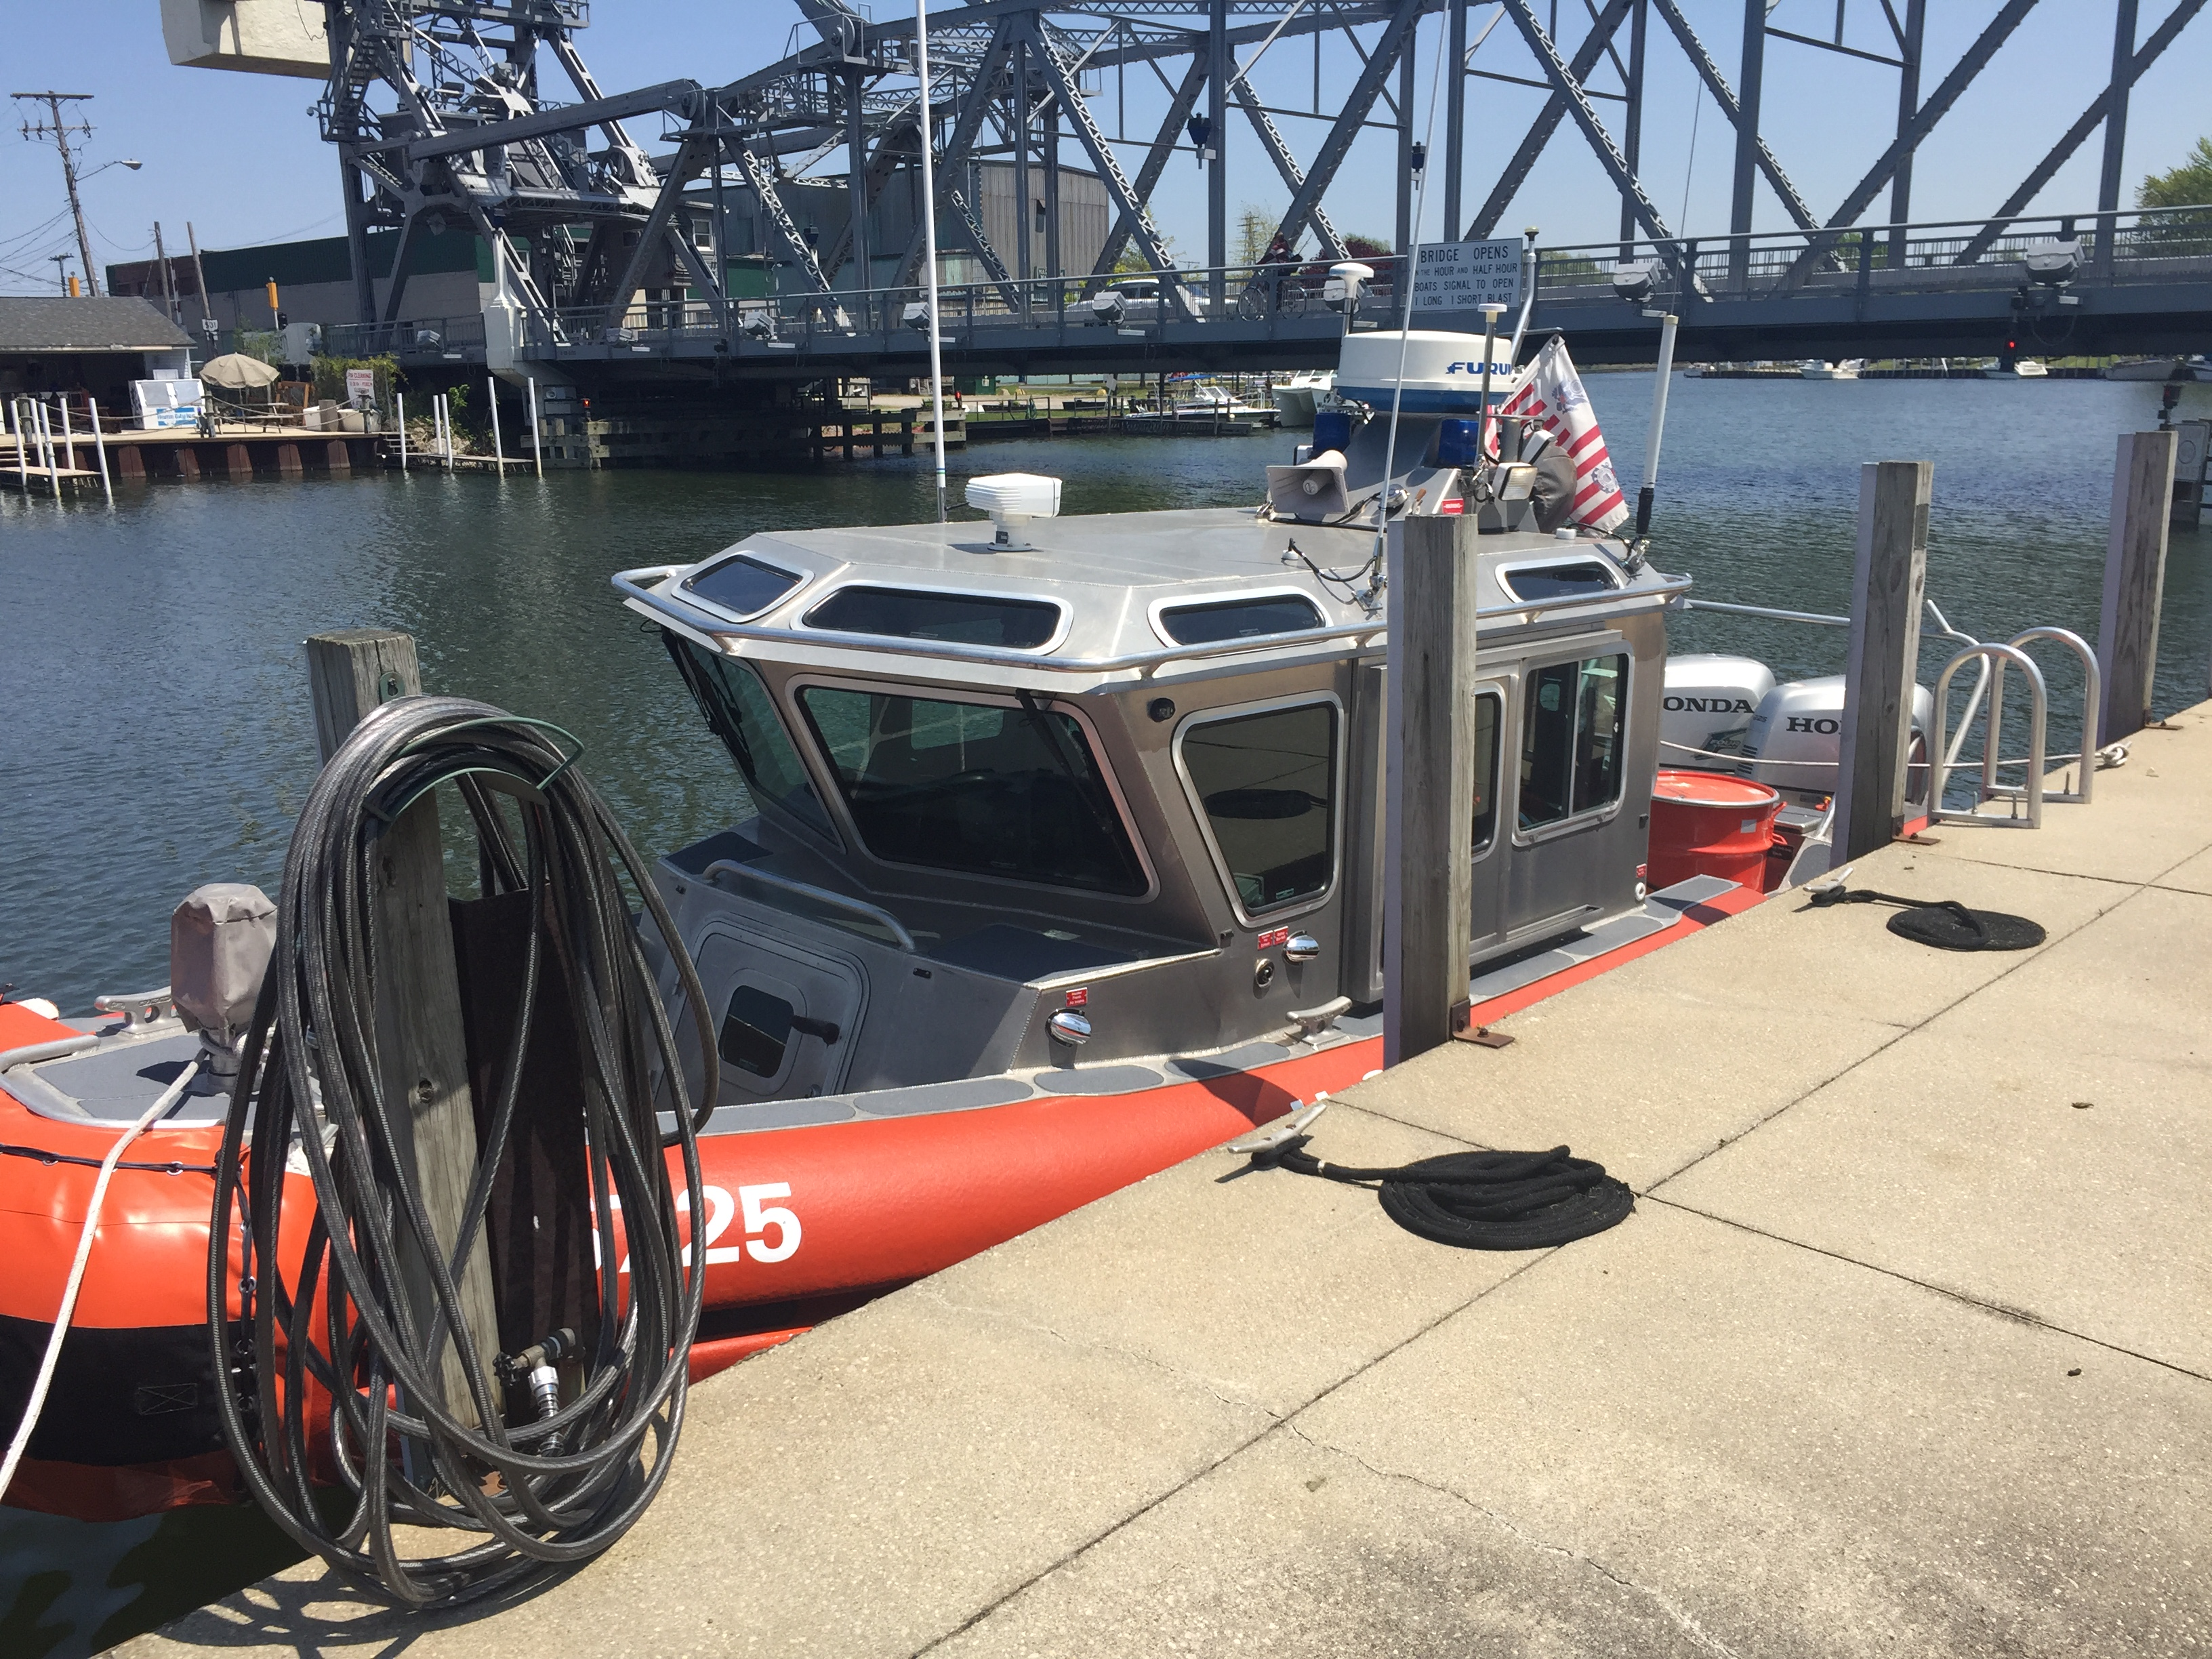 Caption: Coast Guard boat, Credit: Elizabeth Miller/ideastream